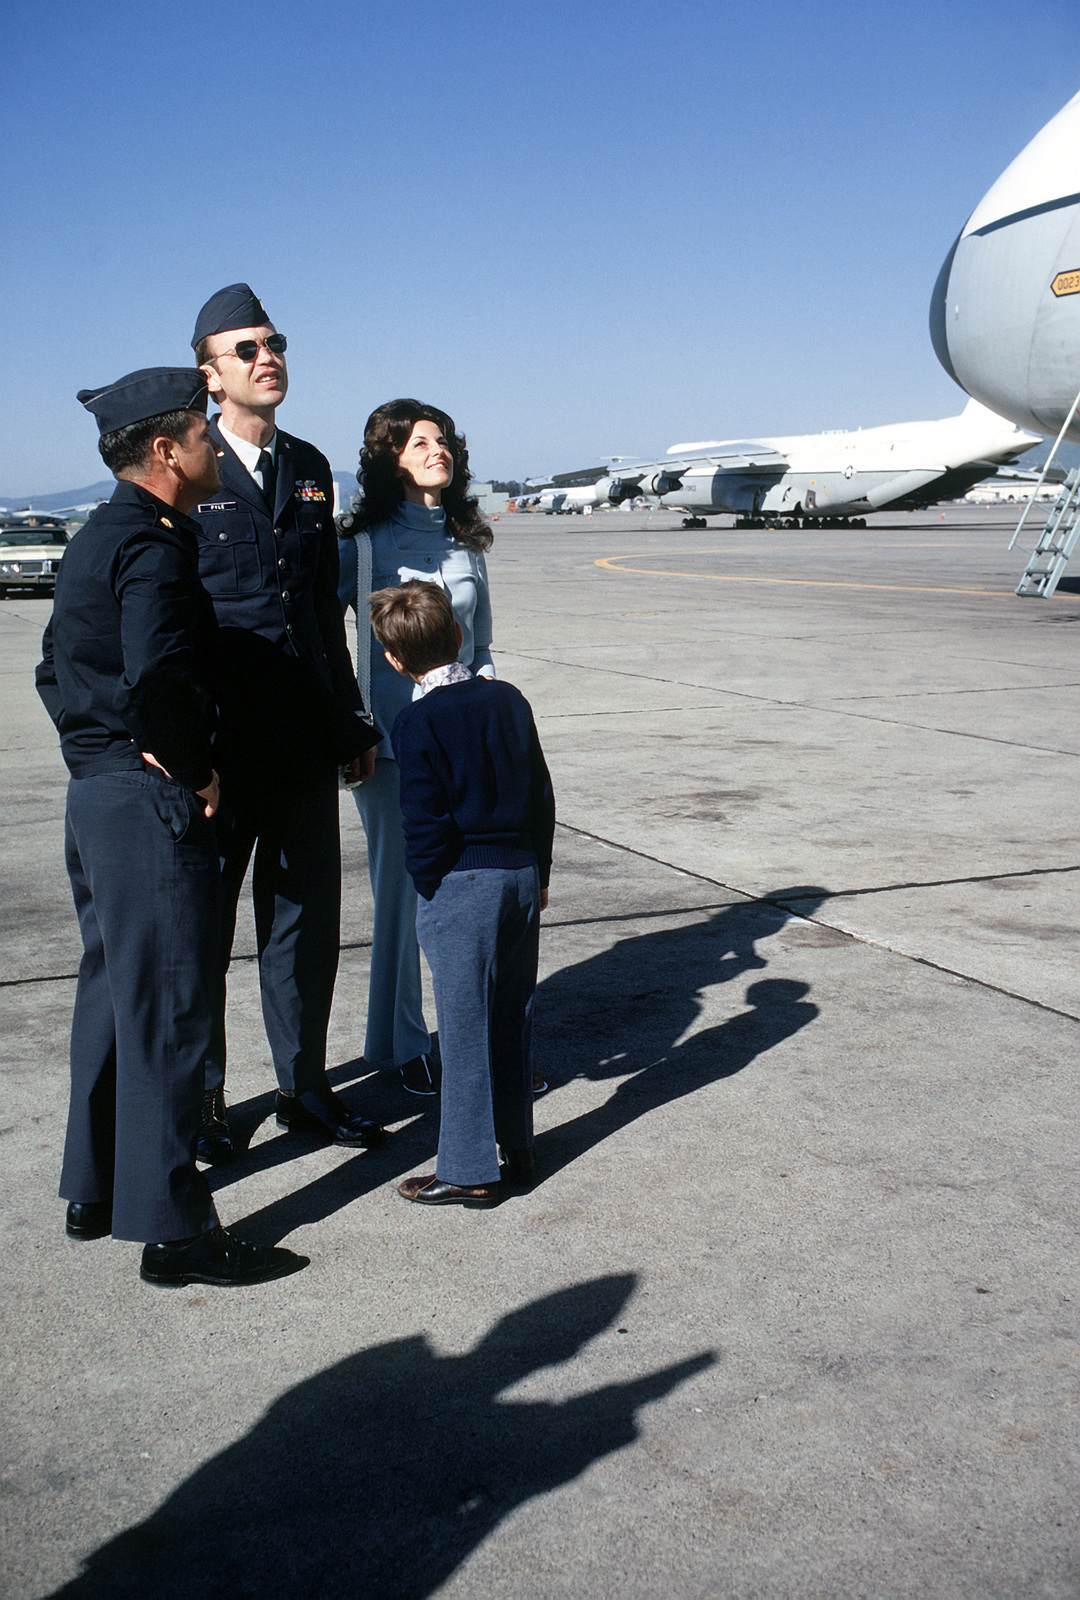 Former POW and U.S. Air Force CPT Darrel Edwin Pyle, wife Karen, son and an escort look over the giant C-5 Galaxy aircraft on the flight line. CPT Pyle was captured on 13 Jun 66 and released by the North Vietnamese in Hanoi on 12 Feb 73